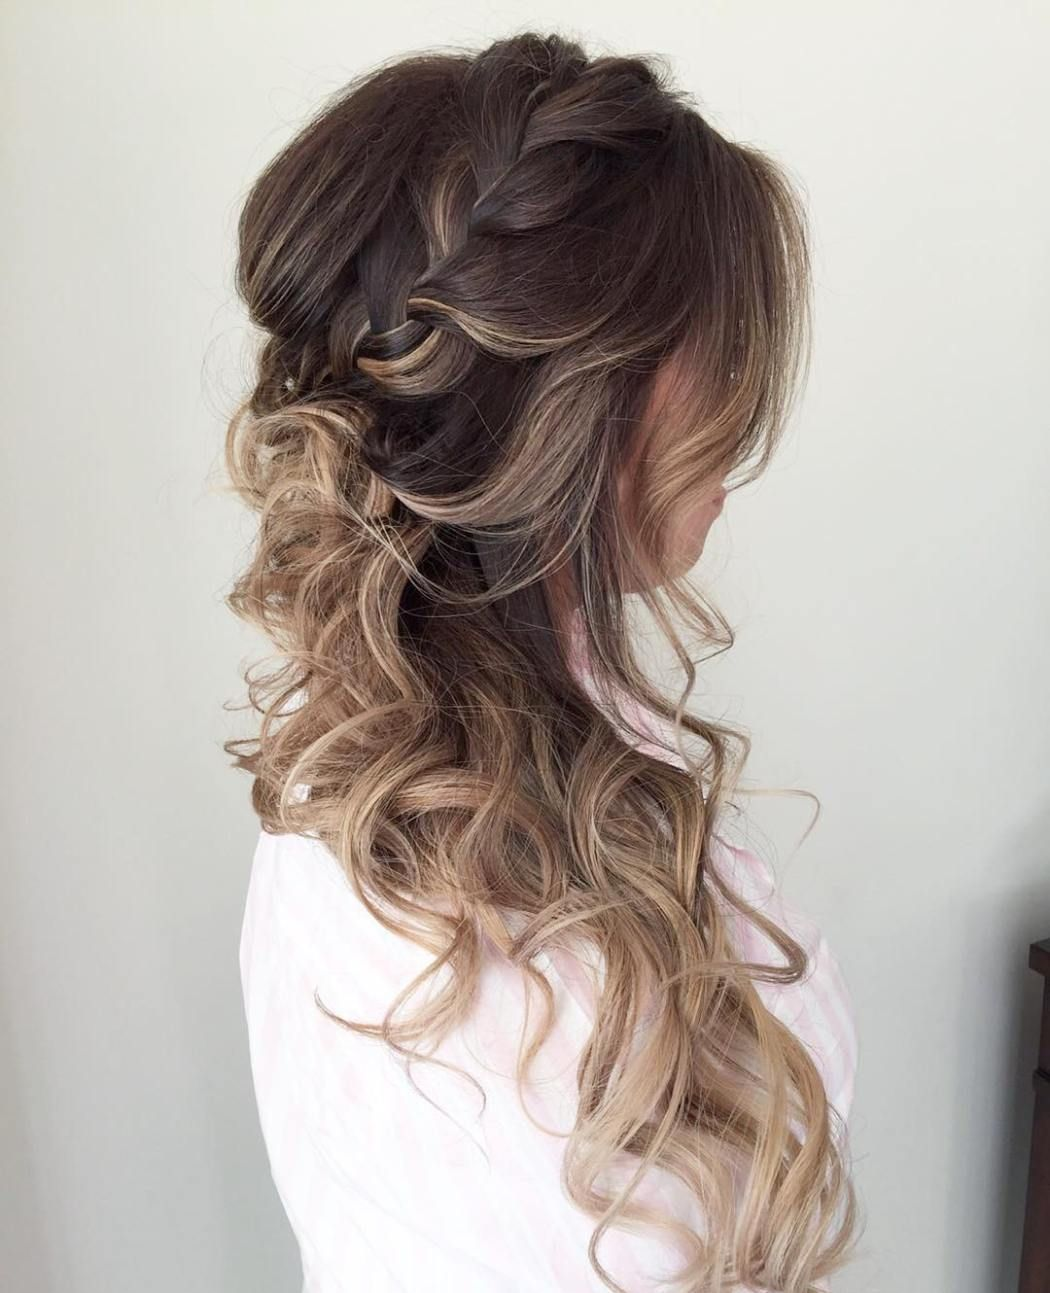 40 Picture-Perfect Hairstyles for Long Thin Hair | Side hairstyles ...